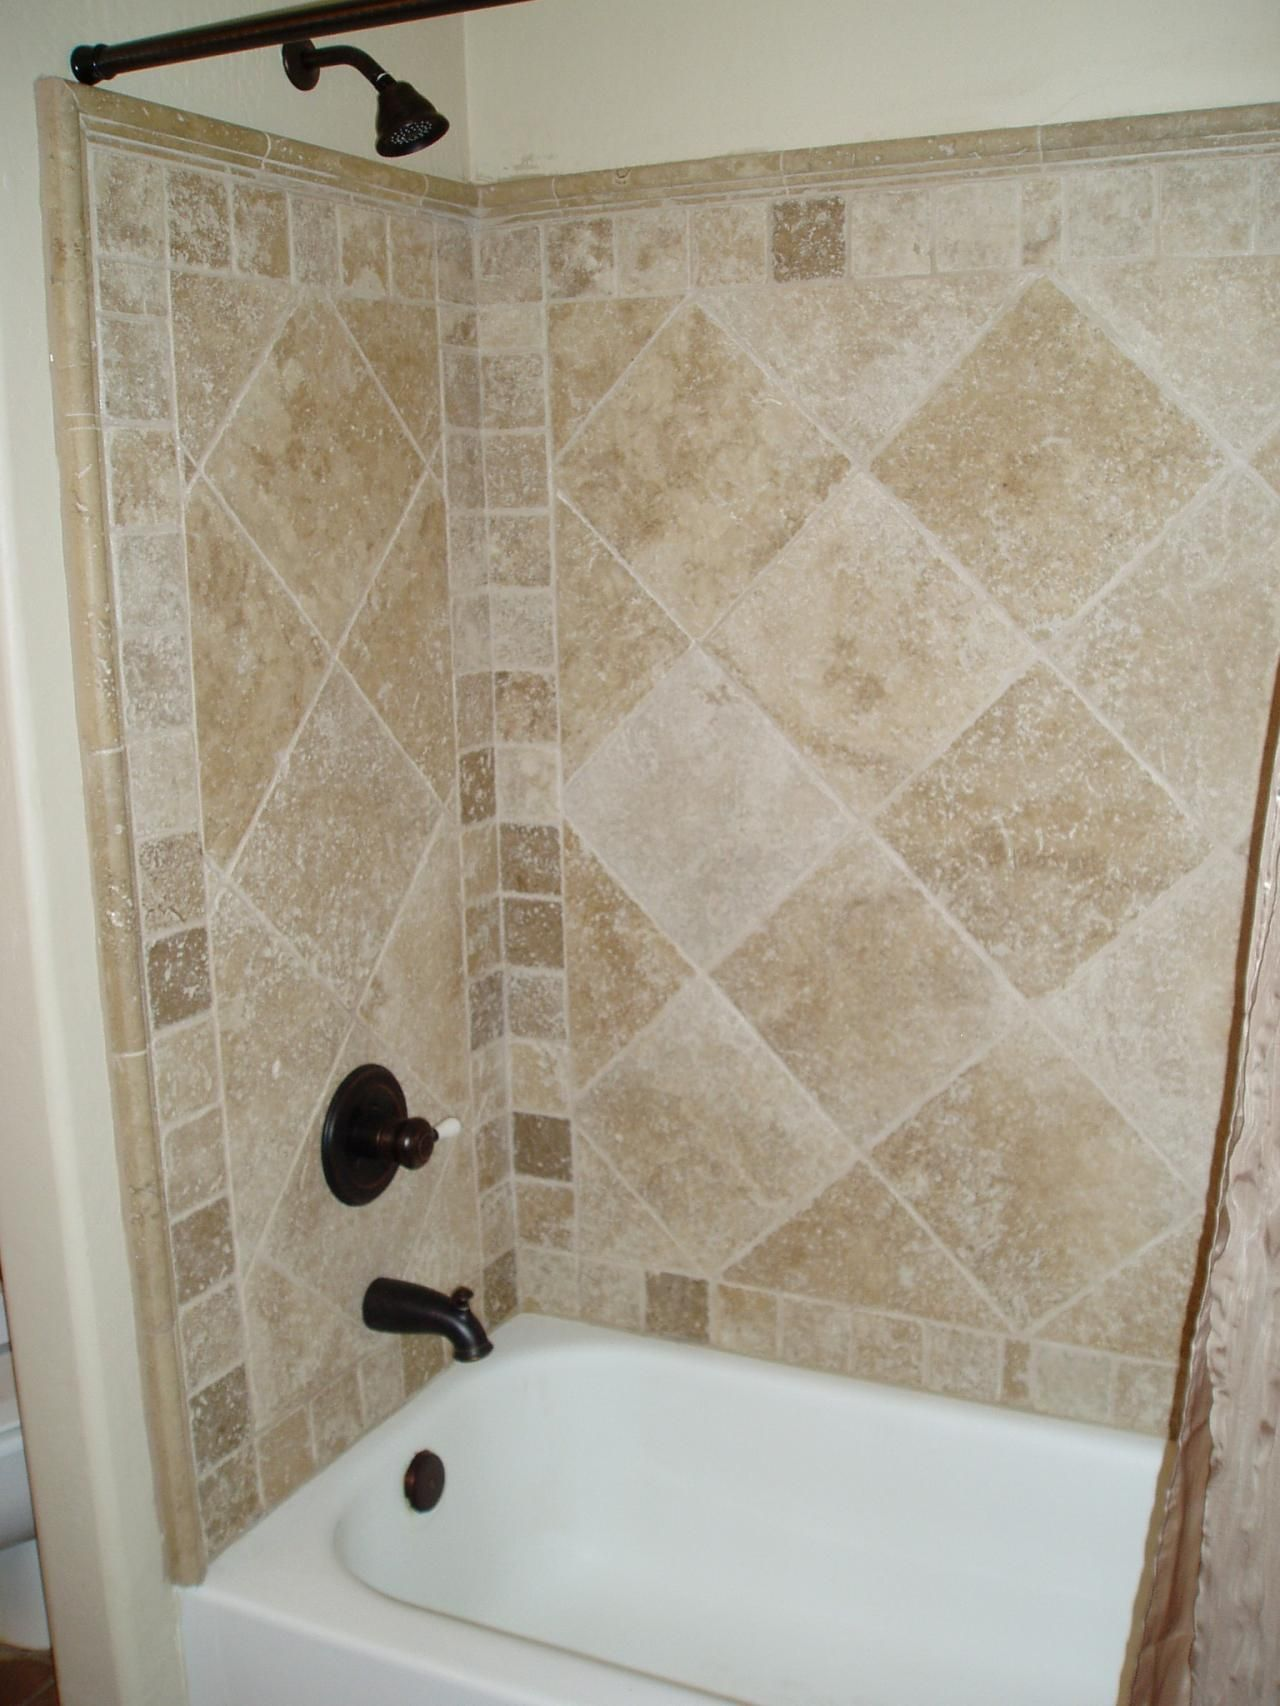 Shower Surrounds That Look Like Tile Your Standard Hall Shower Can Look Like This In A Day Bathtub Shower Combo Bathtub Tile Surround Bathtub Tile